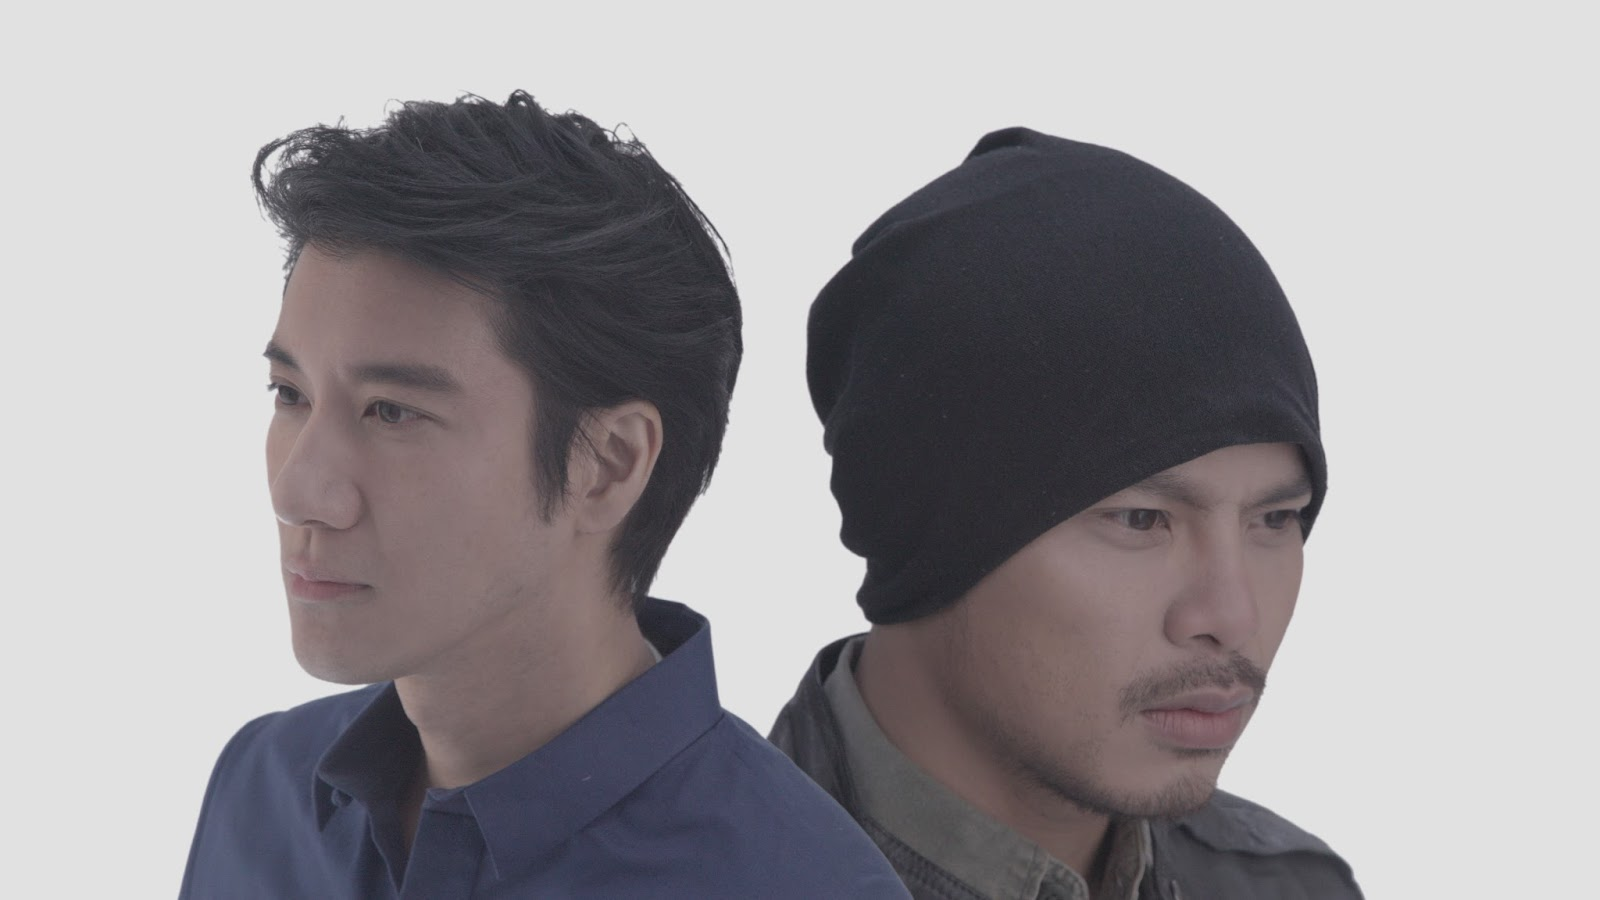 Namewee's song featuring Wang Leehom breaks a million views in 2 days